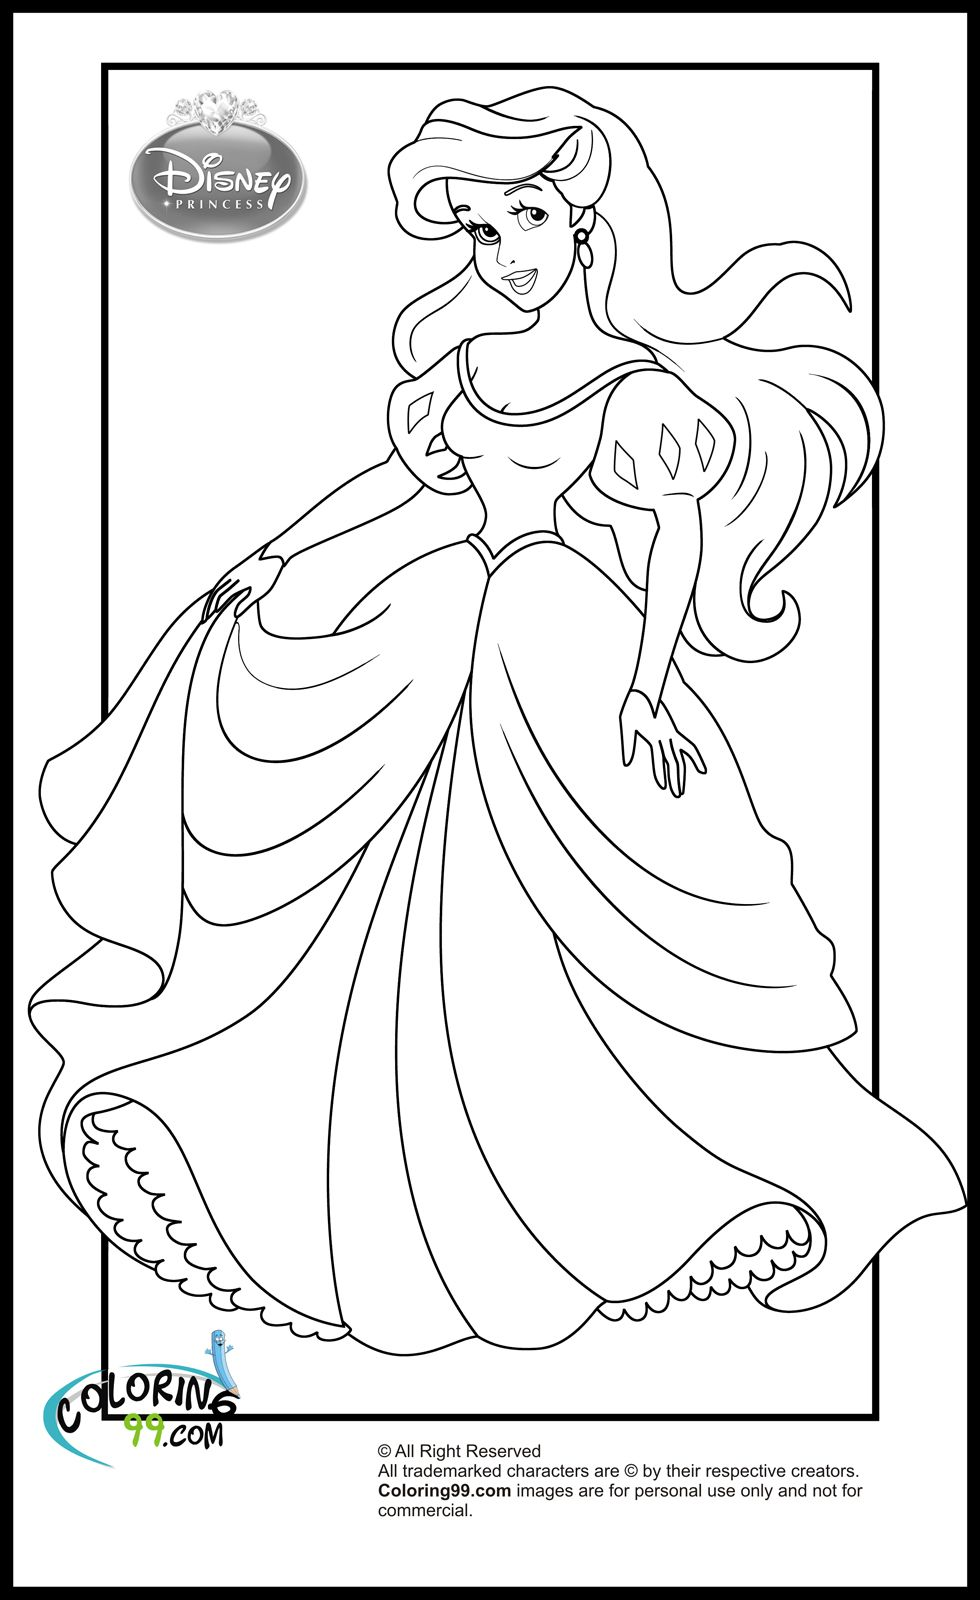 disney princess ariel coloring pagesjpg 9801600 pixels